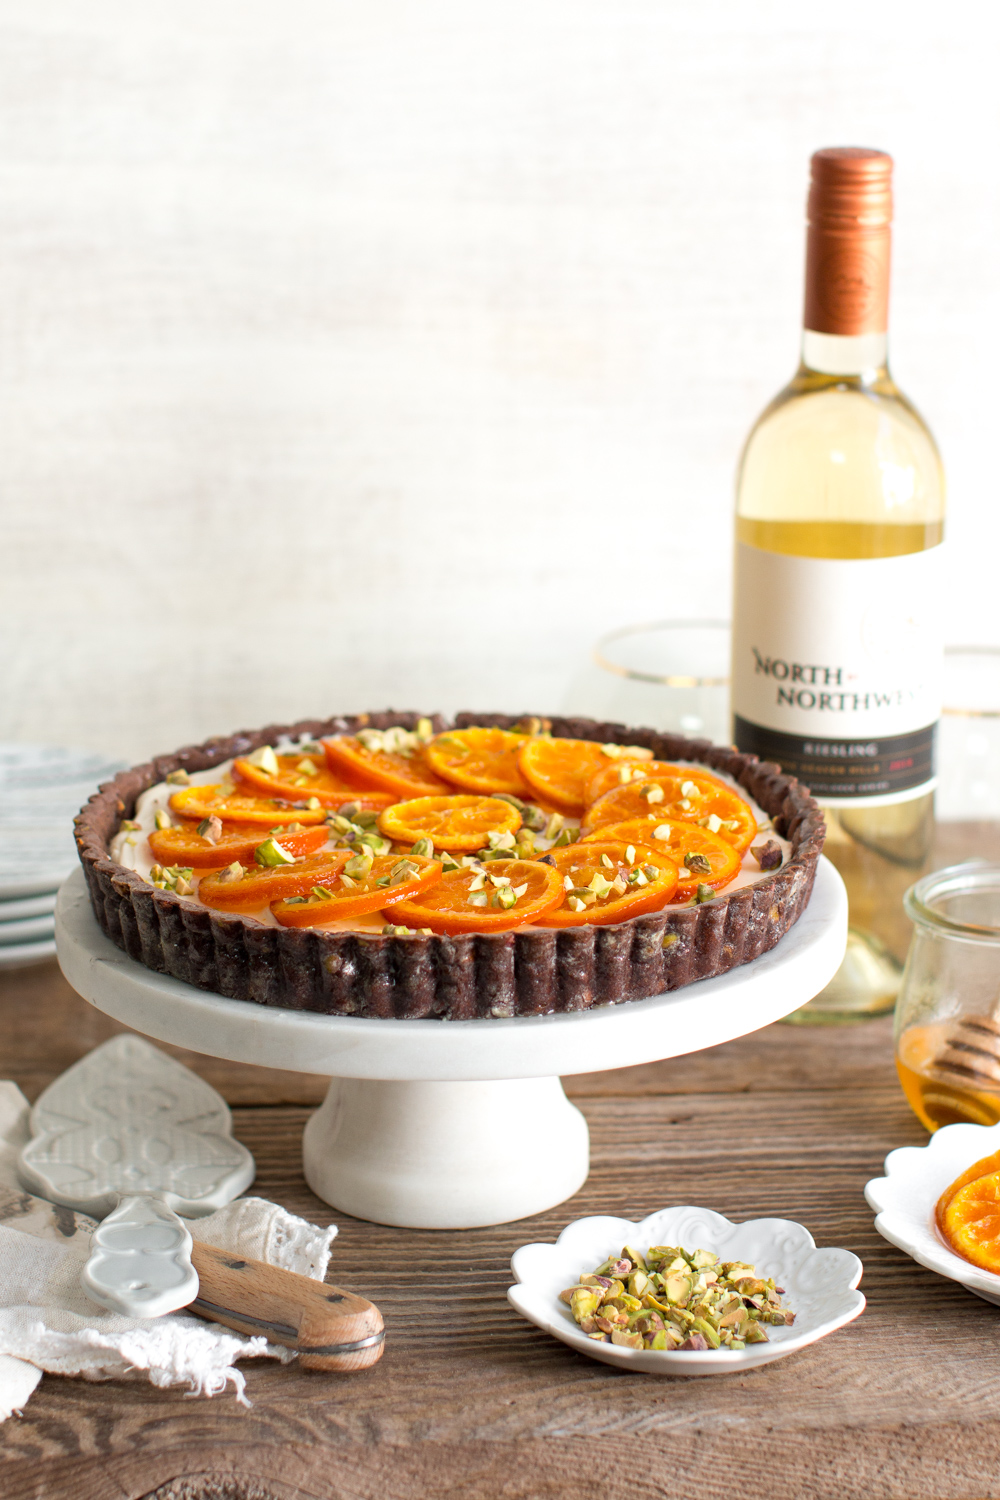 Candied Tangerine Mascarpone Tart with Pistachio Chocolate Crust with NxNW Riesling